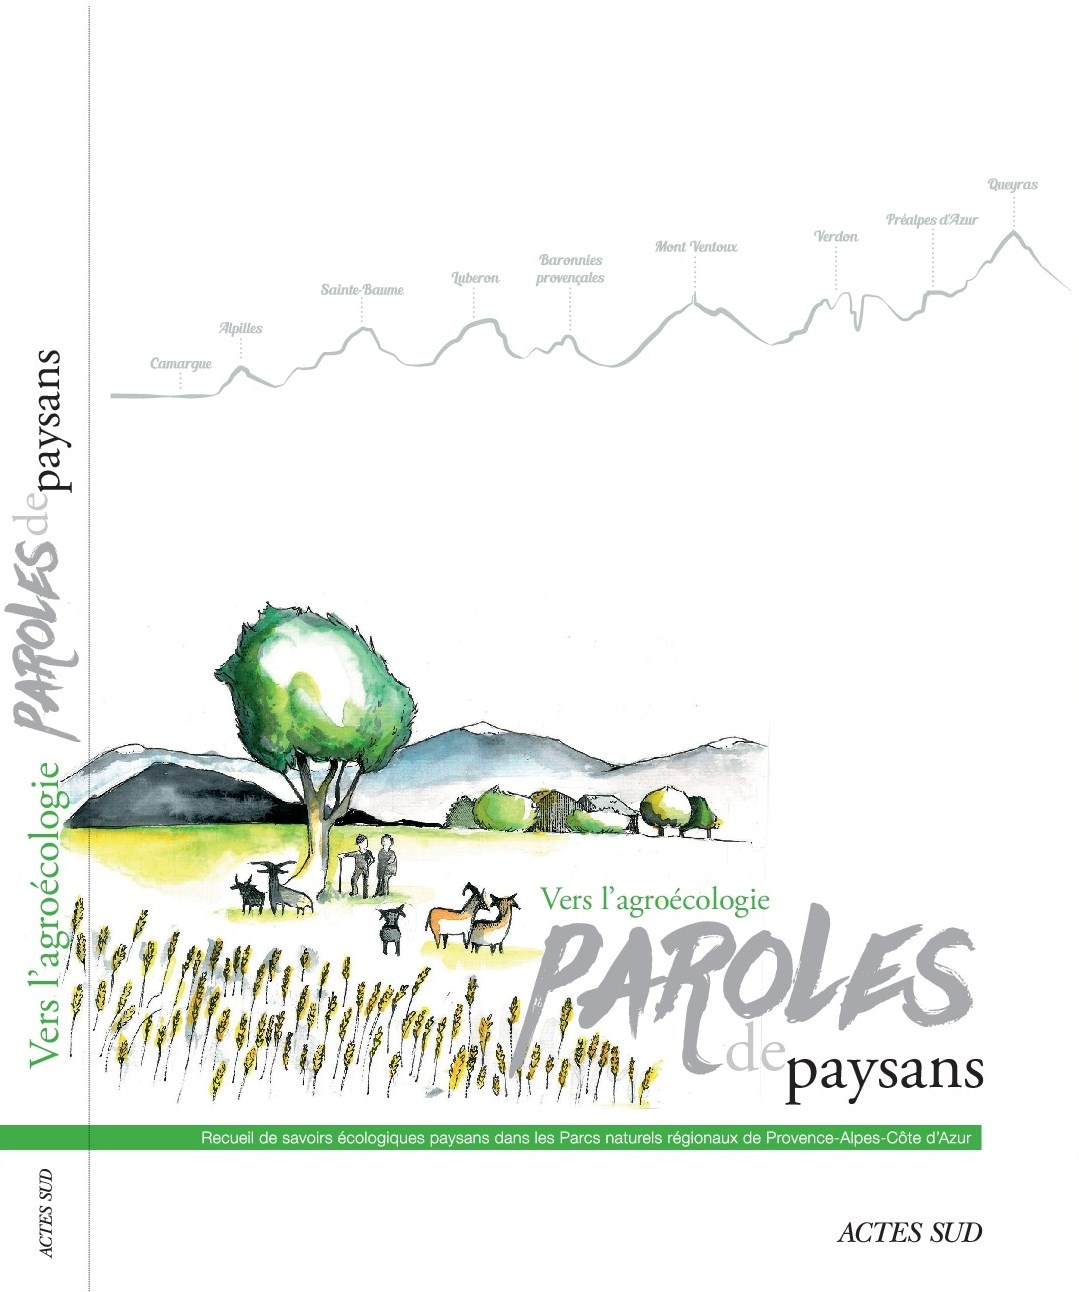 Actes-Sud_Vers_l'agroécologie_paroles_de_paysans_couverture